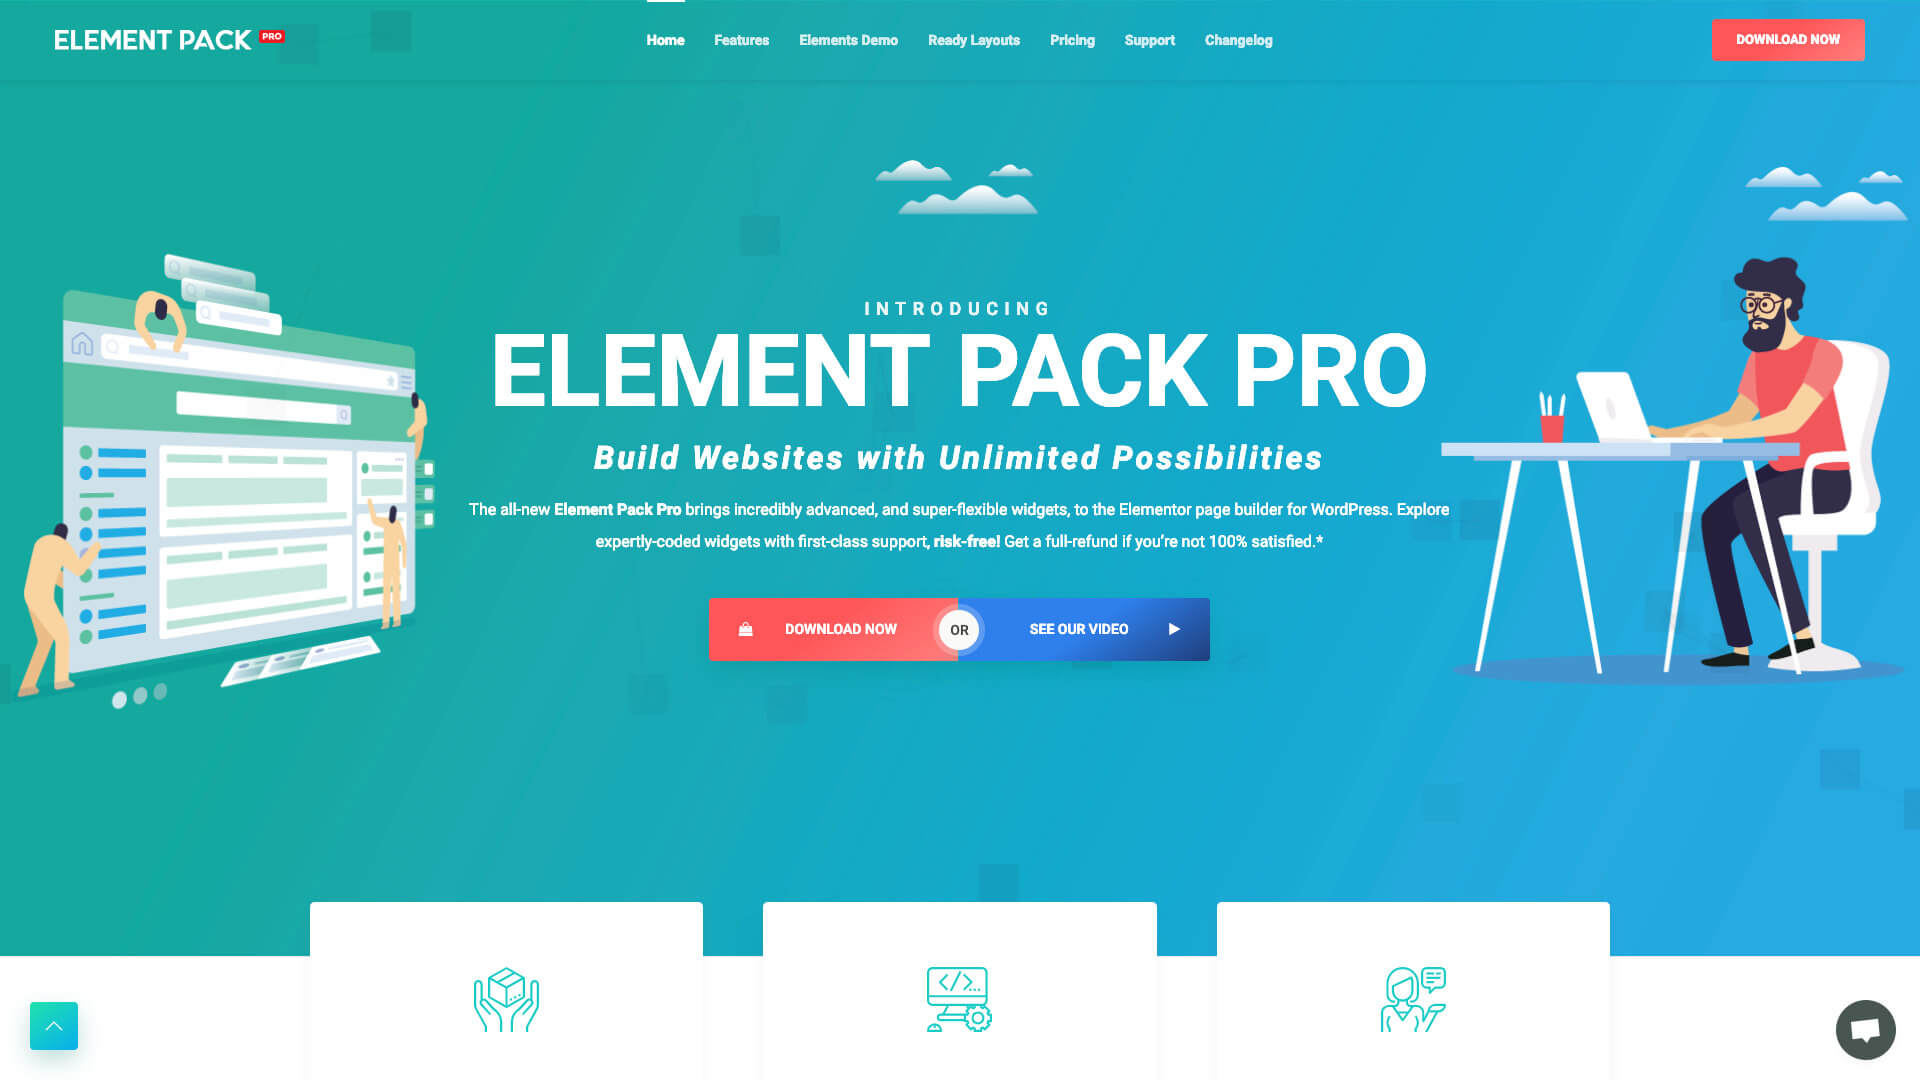 How To Add Parallax Effect In Elementor: 3 - Element Pack Pro